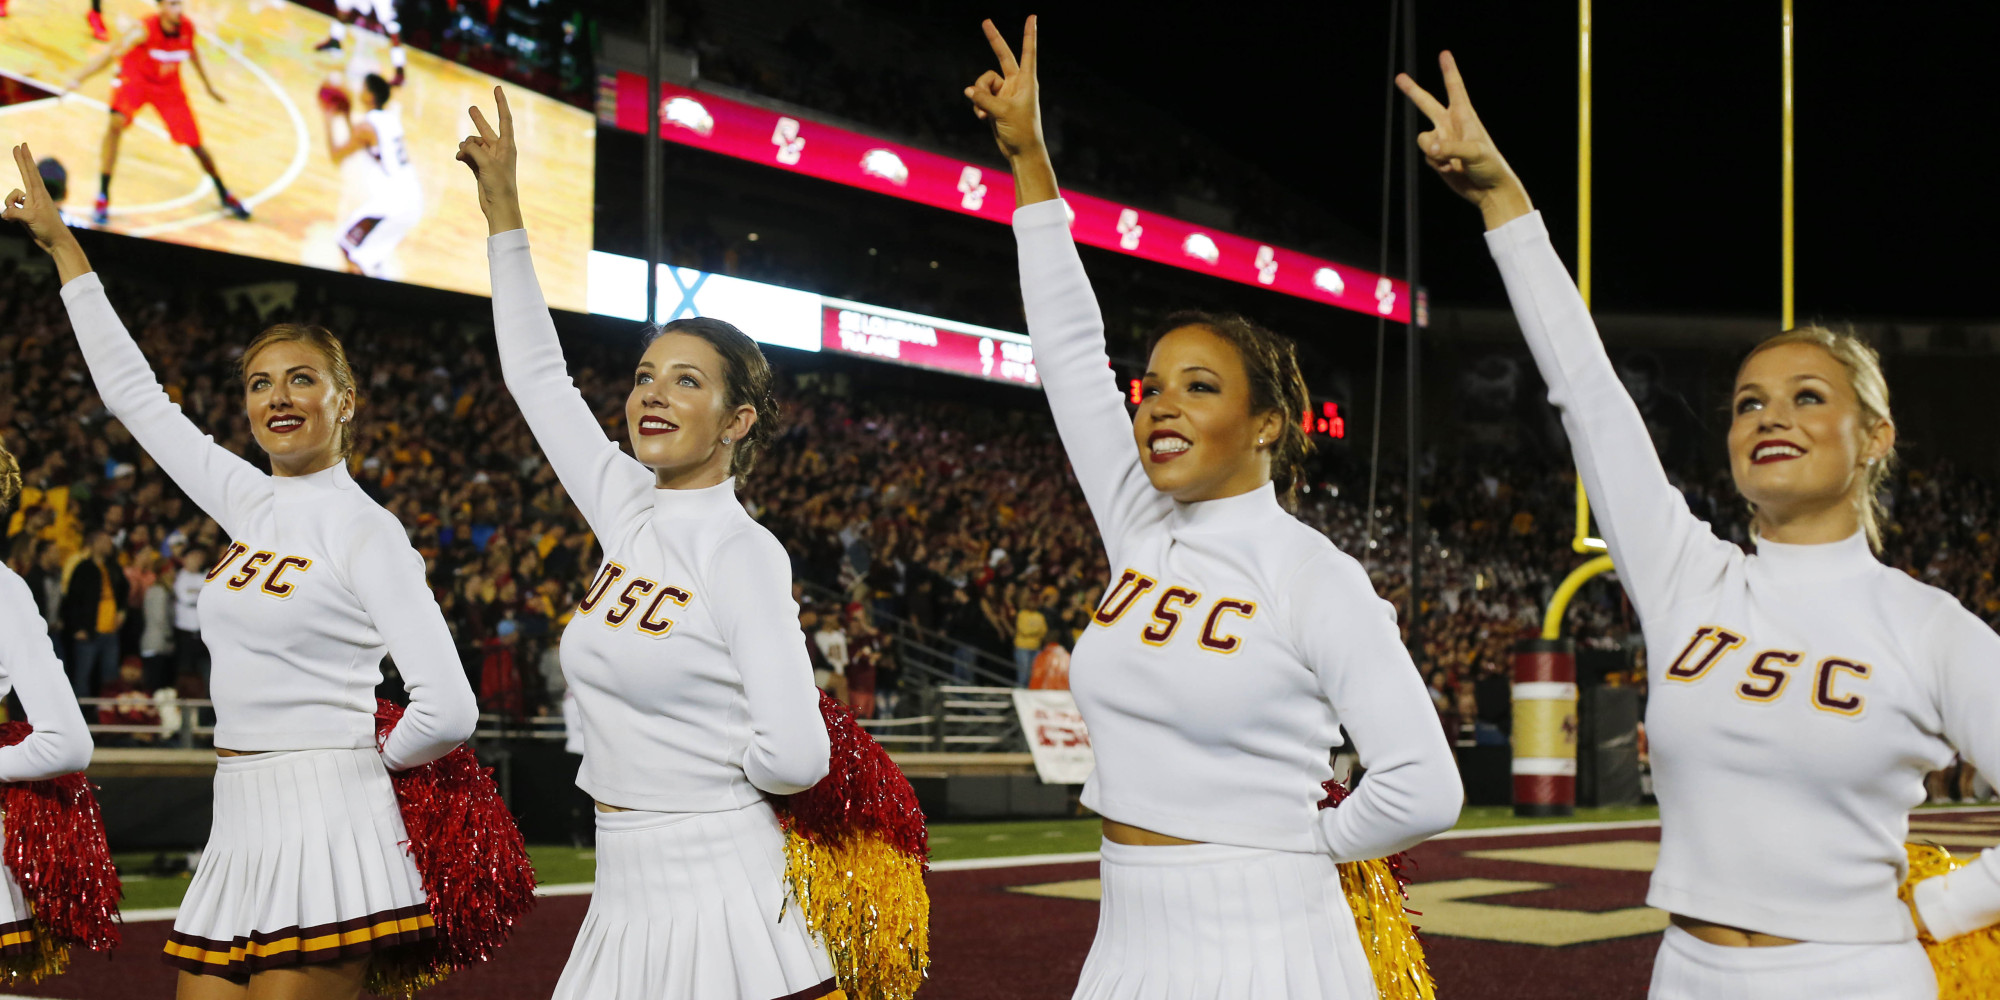 Cms top 10 schools for cheerleading huffpost sciox Image collections